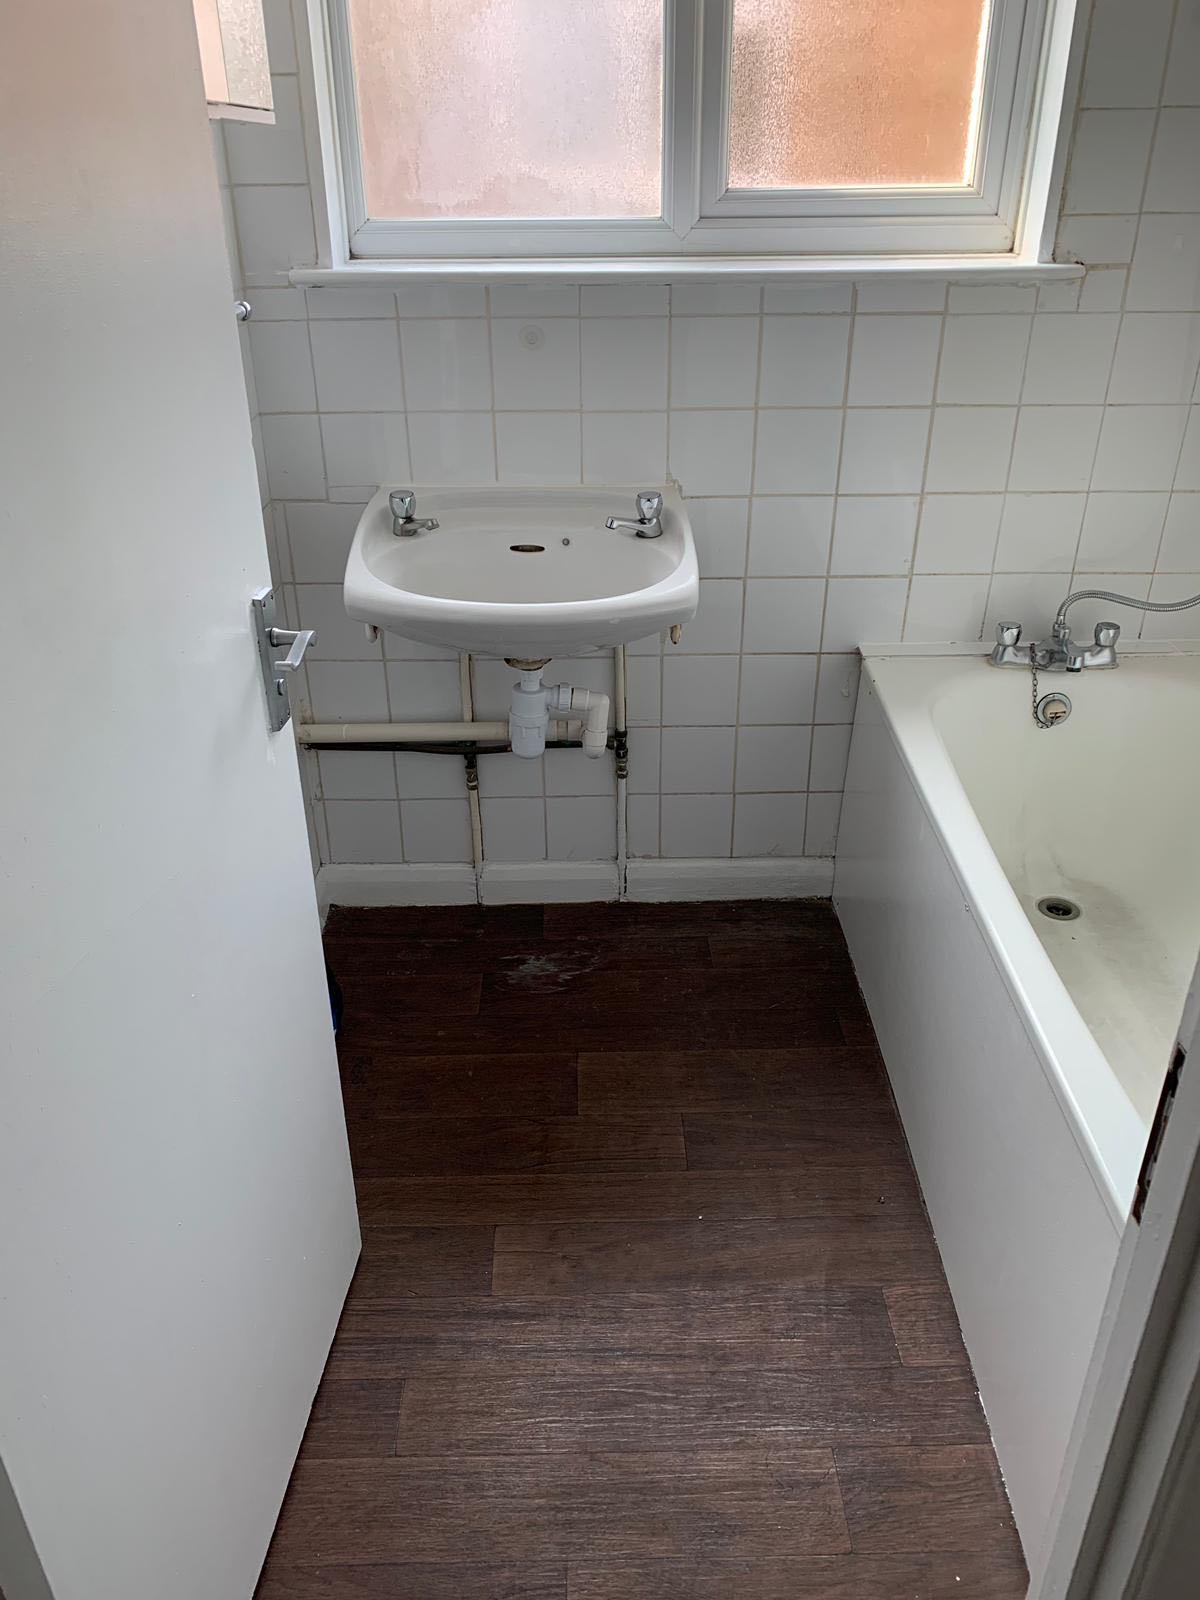 1 room in Woodside, London, N22 6LD RoomsLocal image